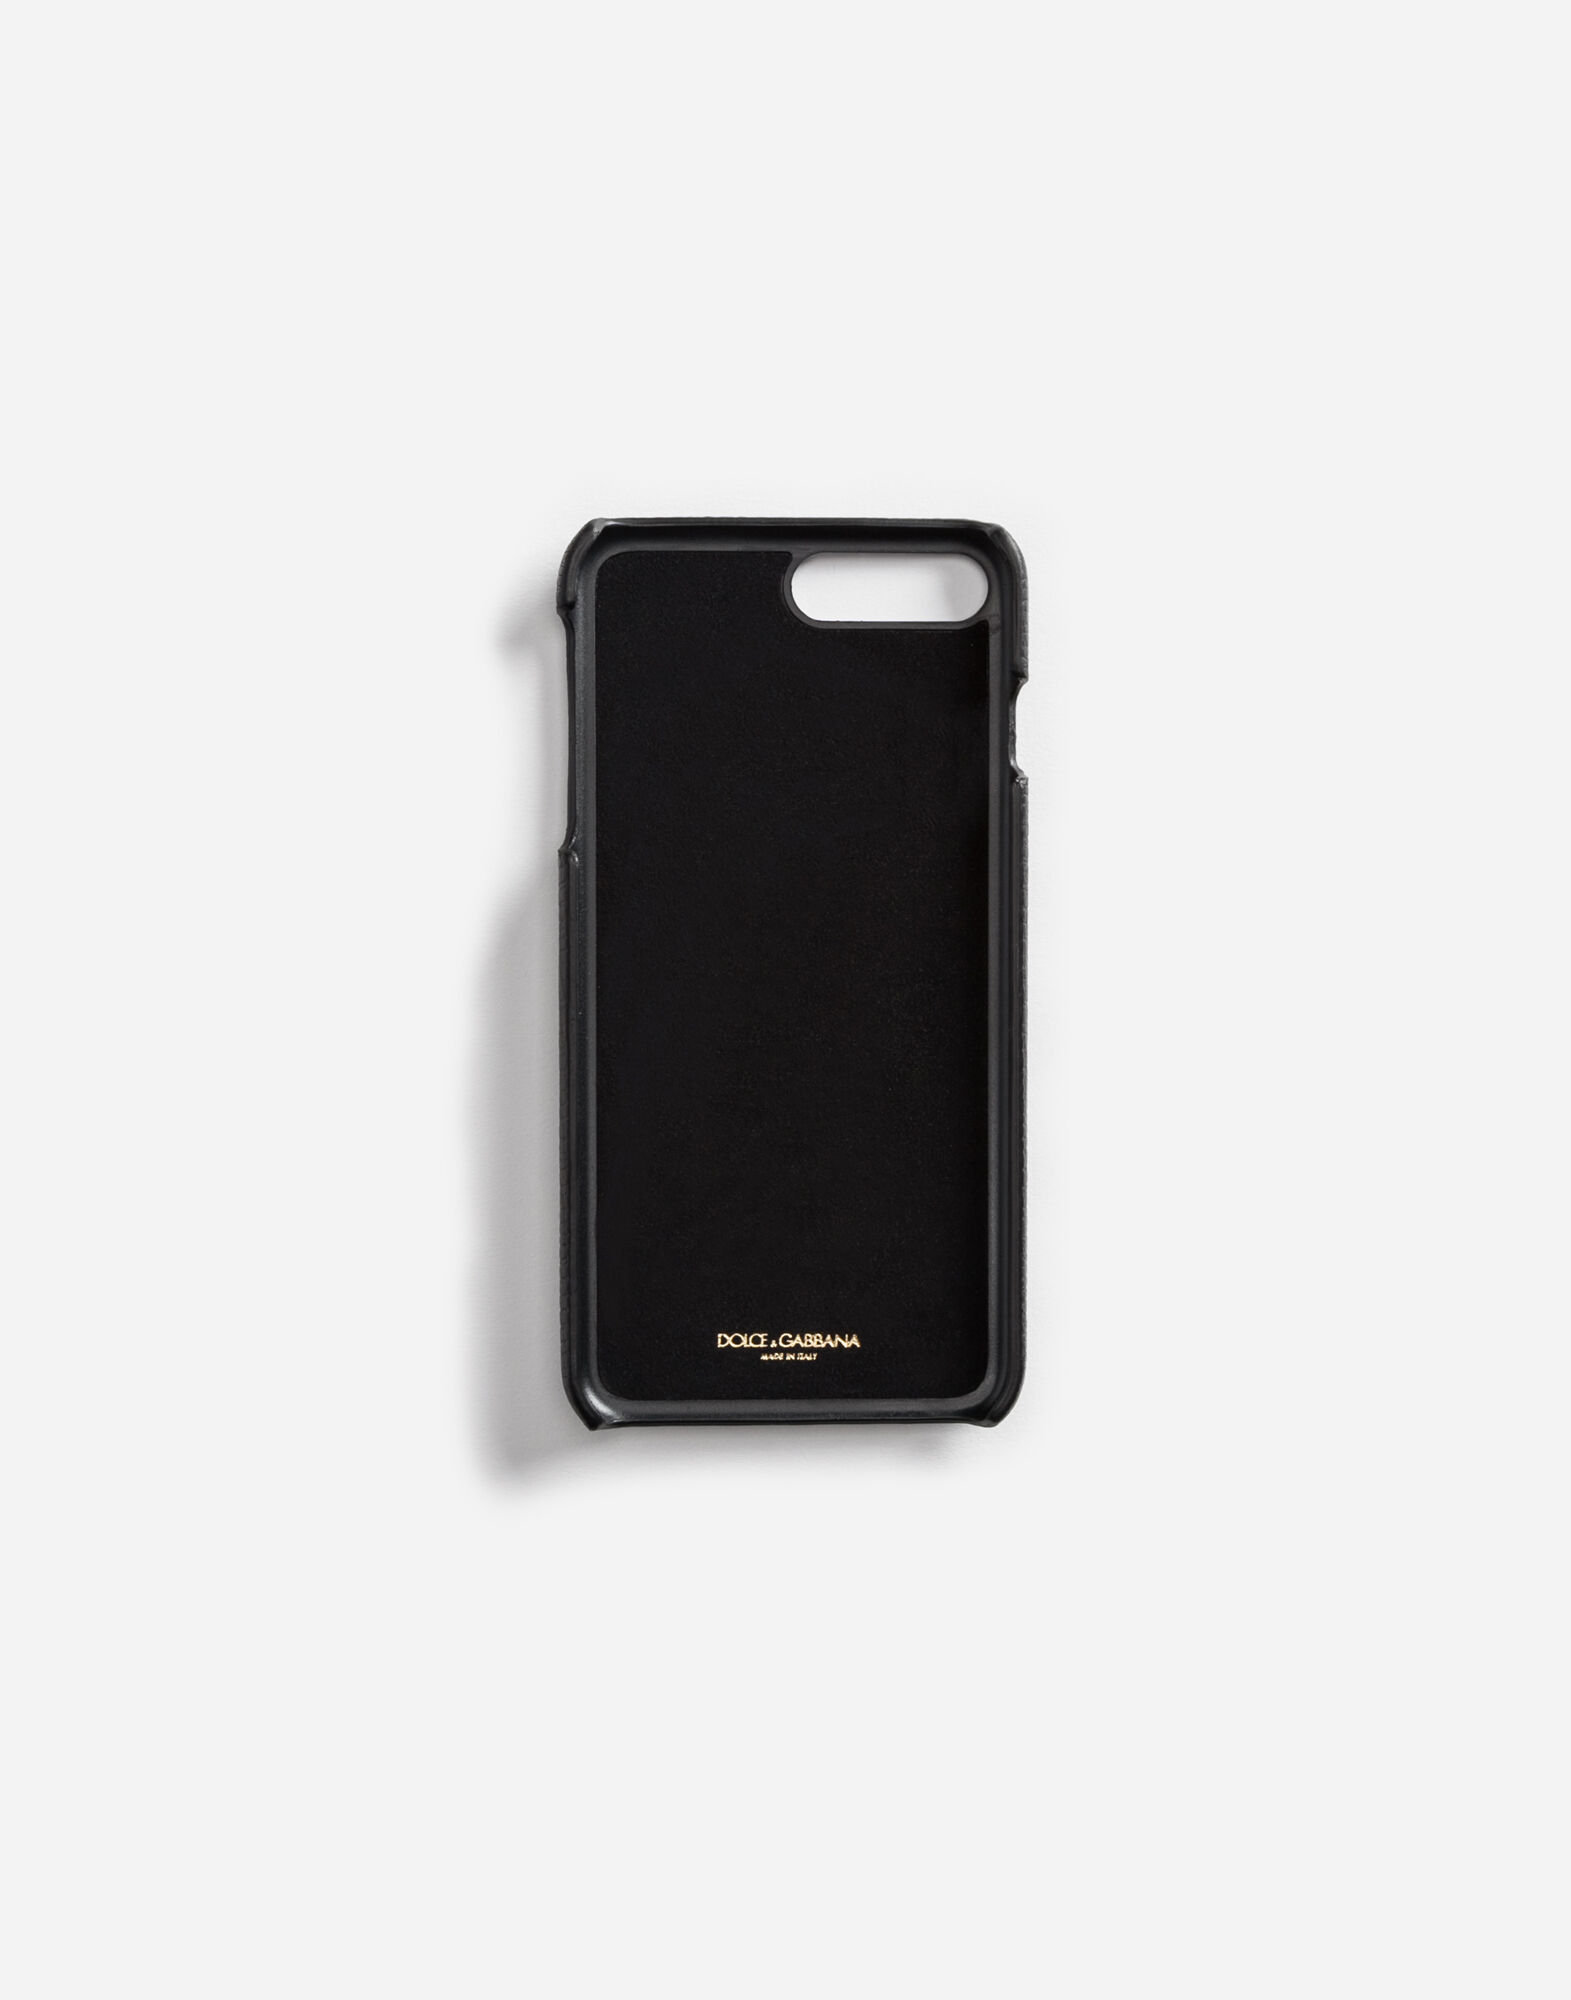 LEATHER IPHONE 7 PLUS COVER WITH PATCHES OF THE DESIGNERS